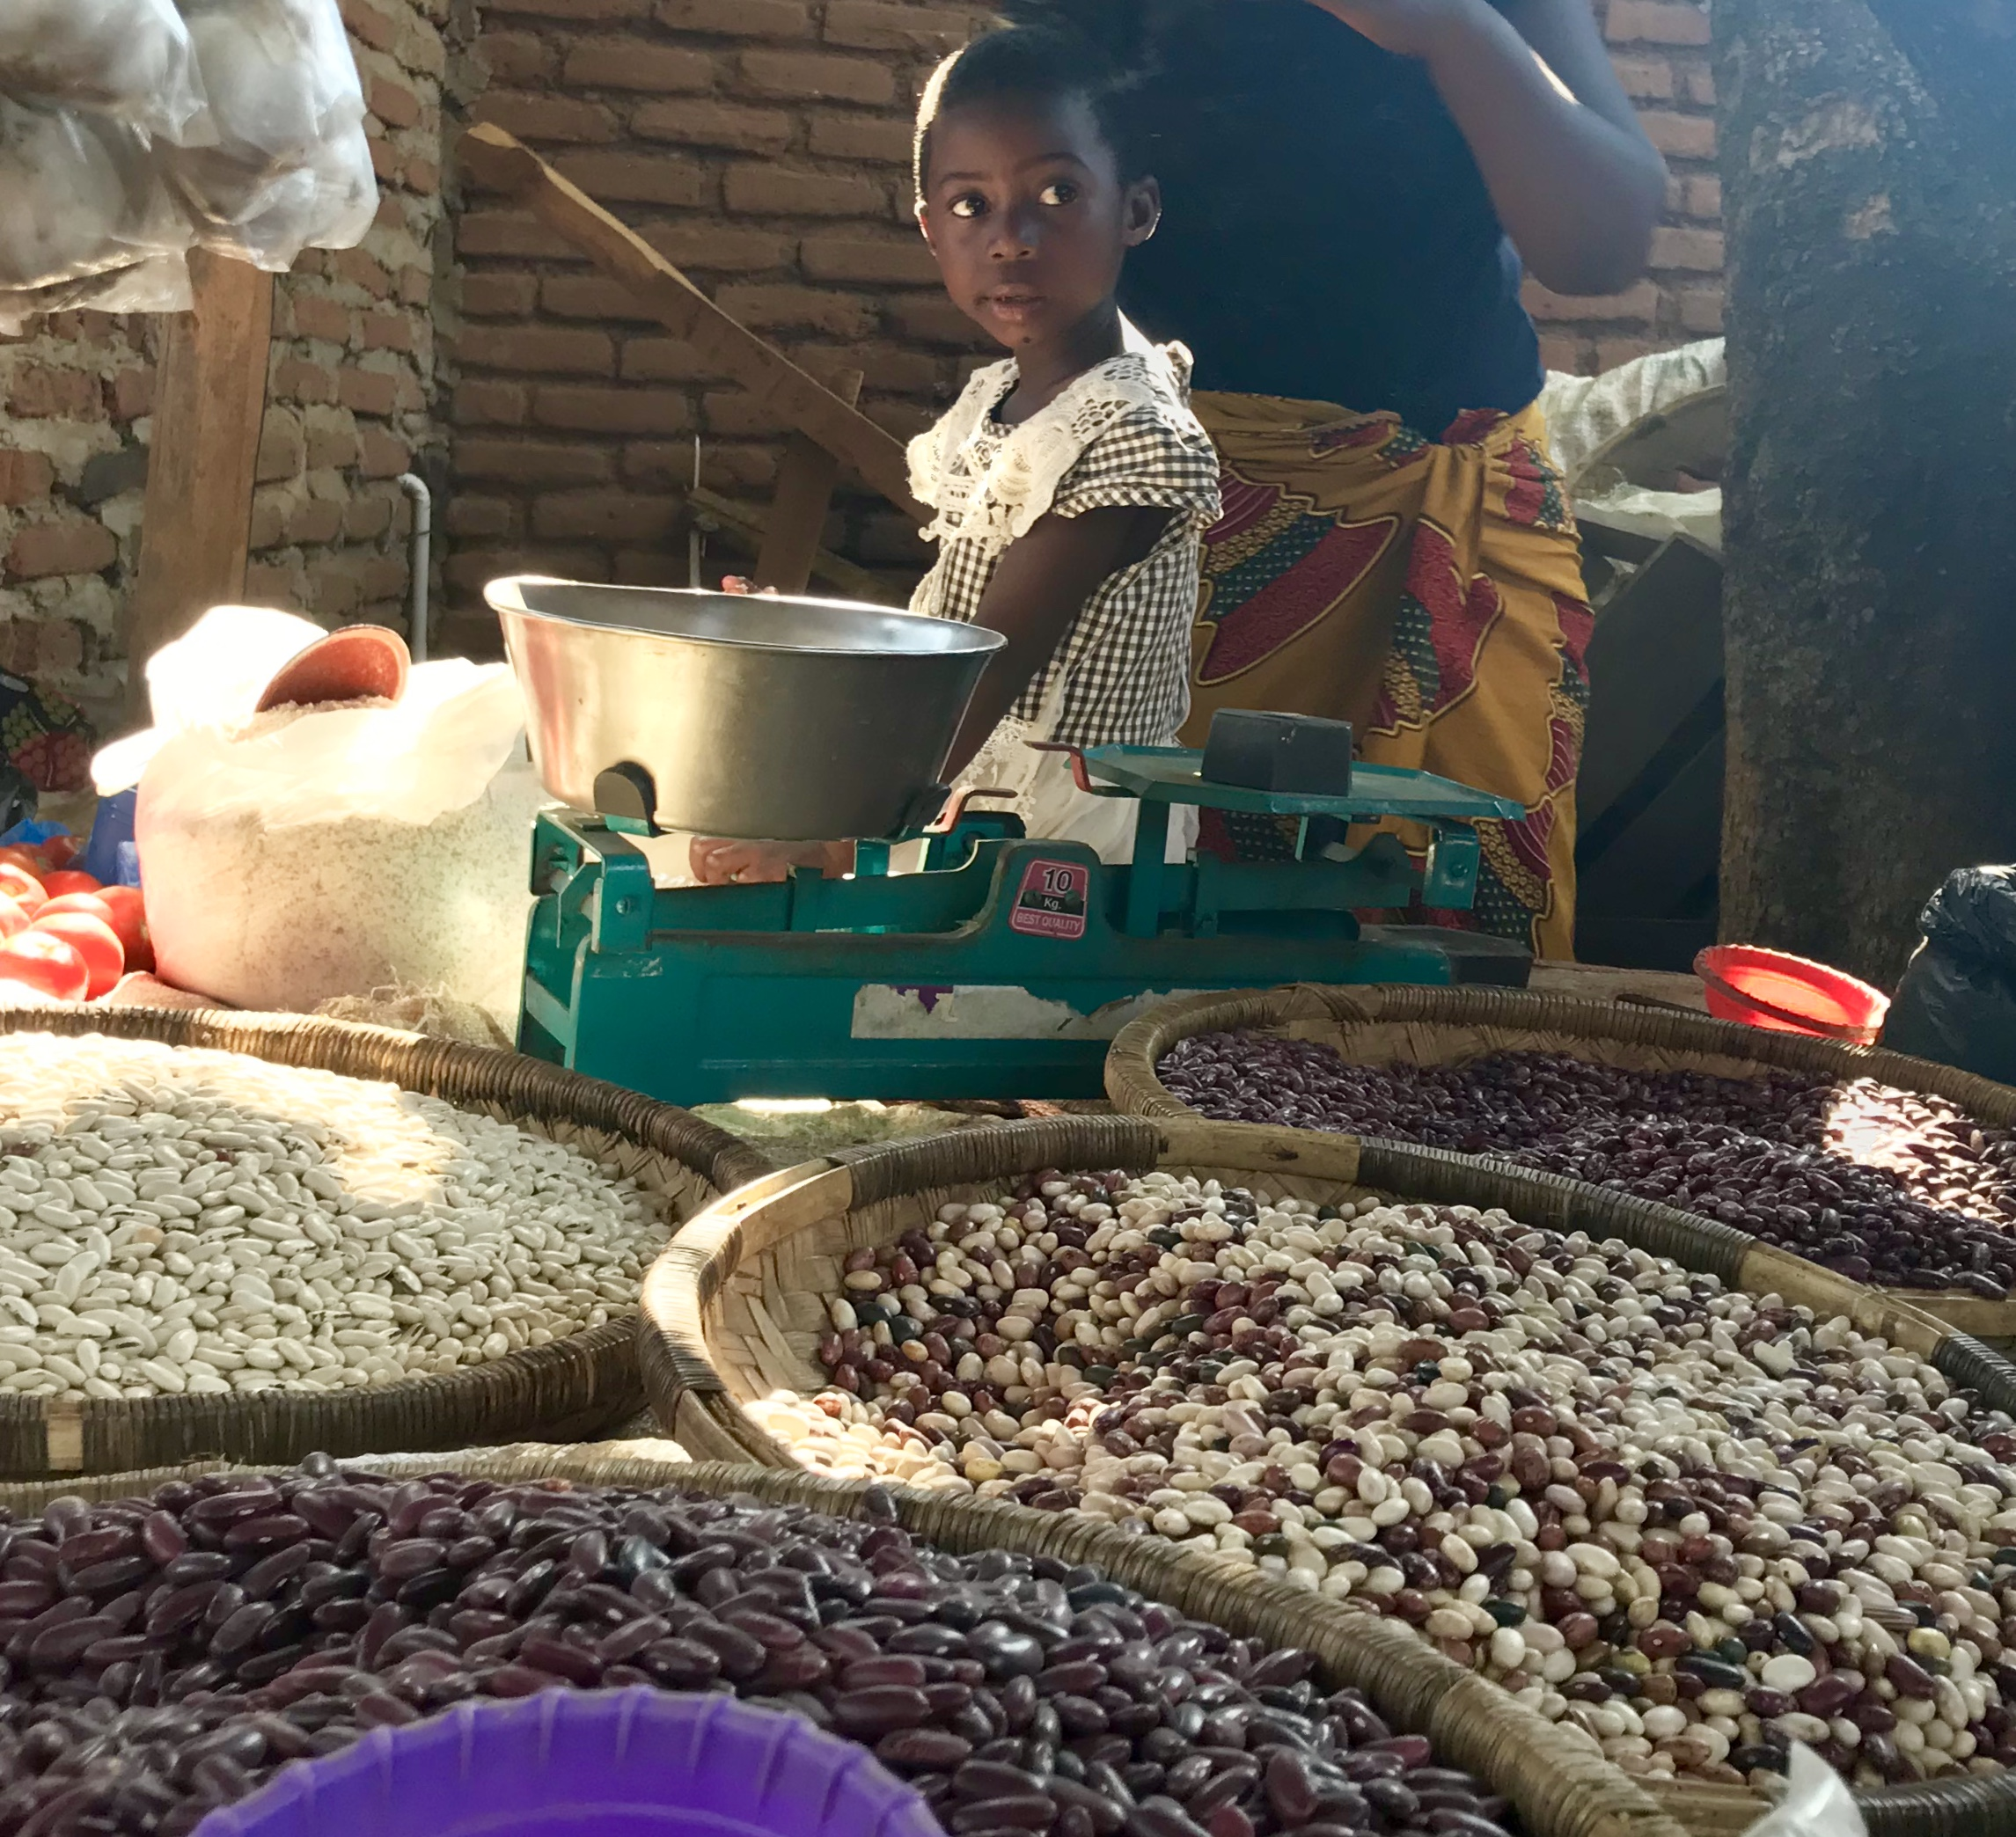 #malawi #africa #food #pulses #beans #nutrition #sustainability #cooking